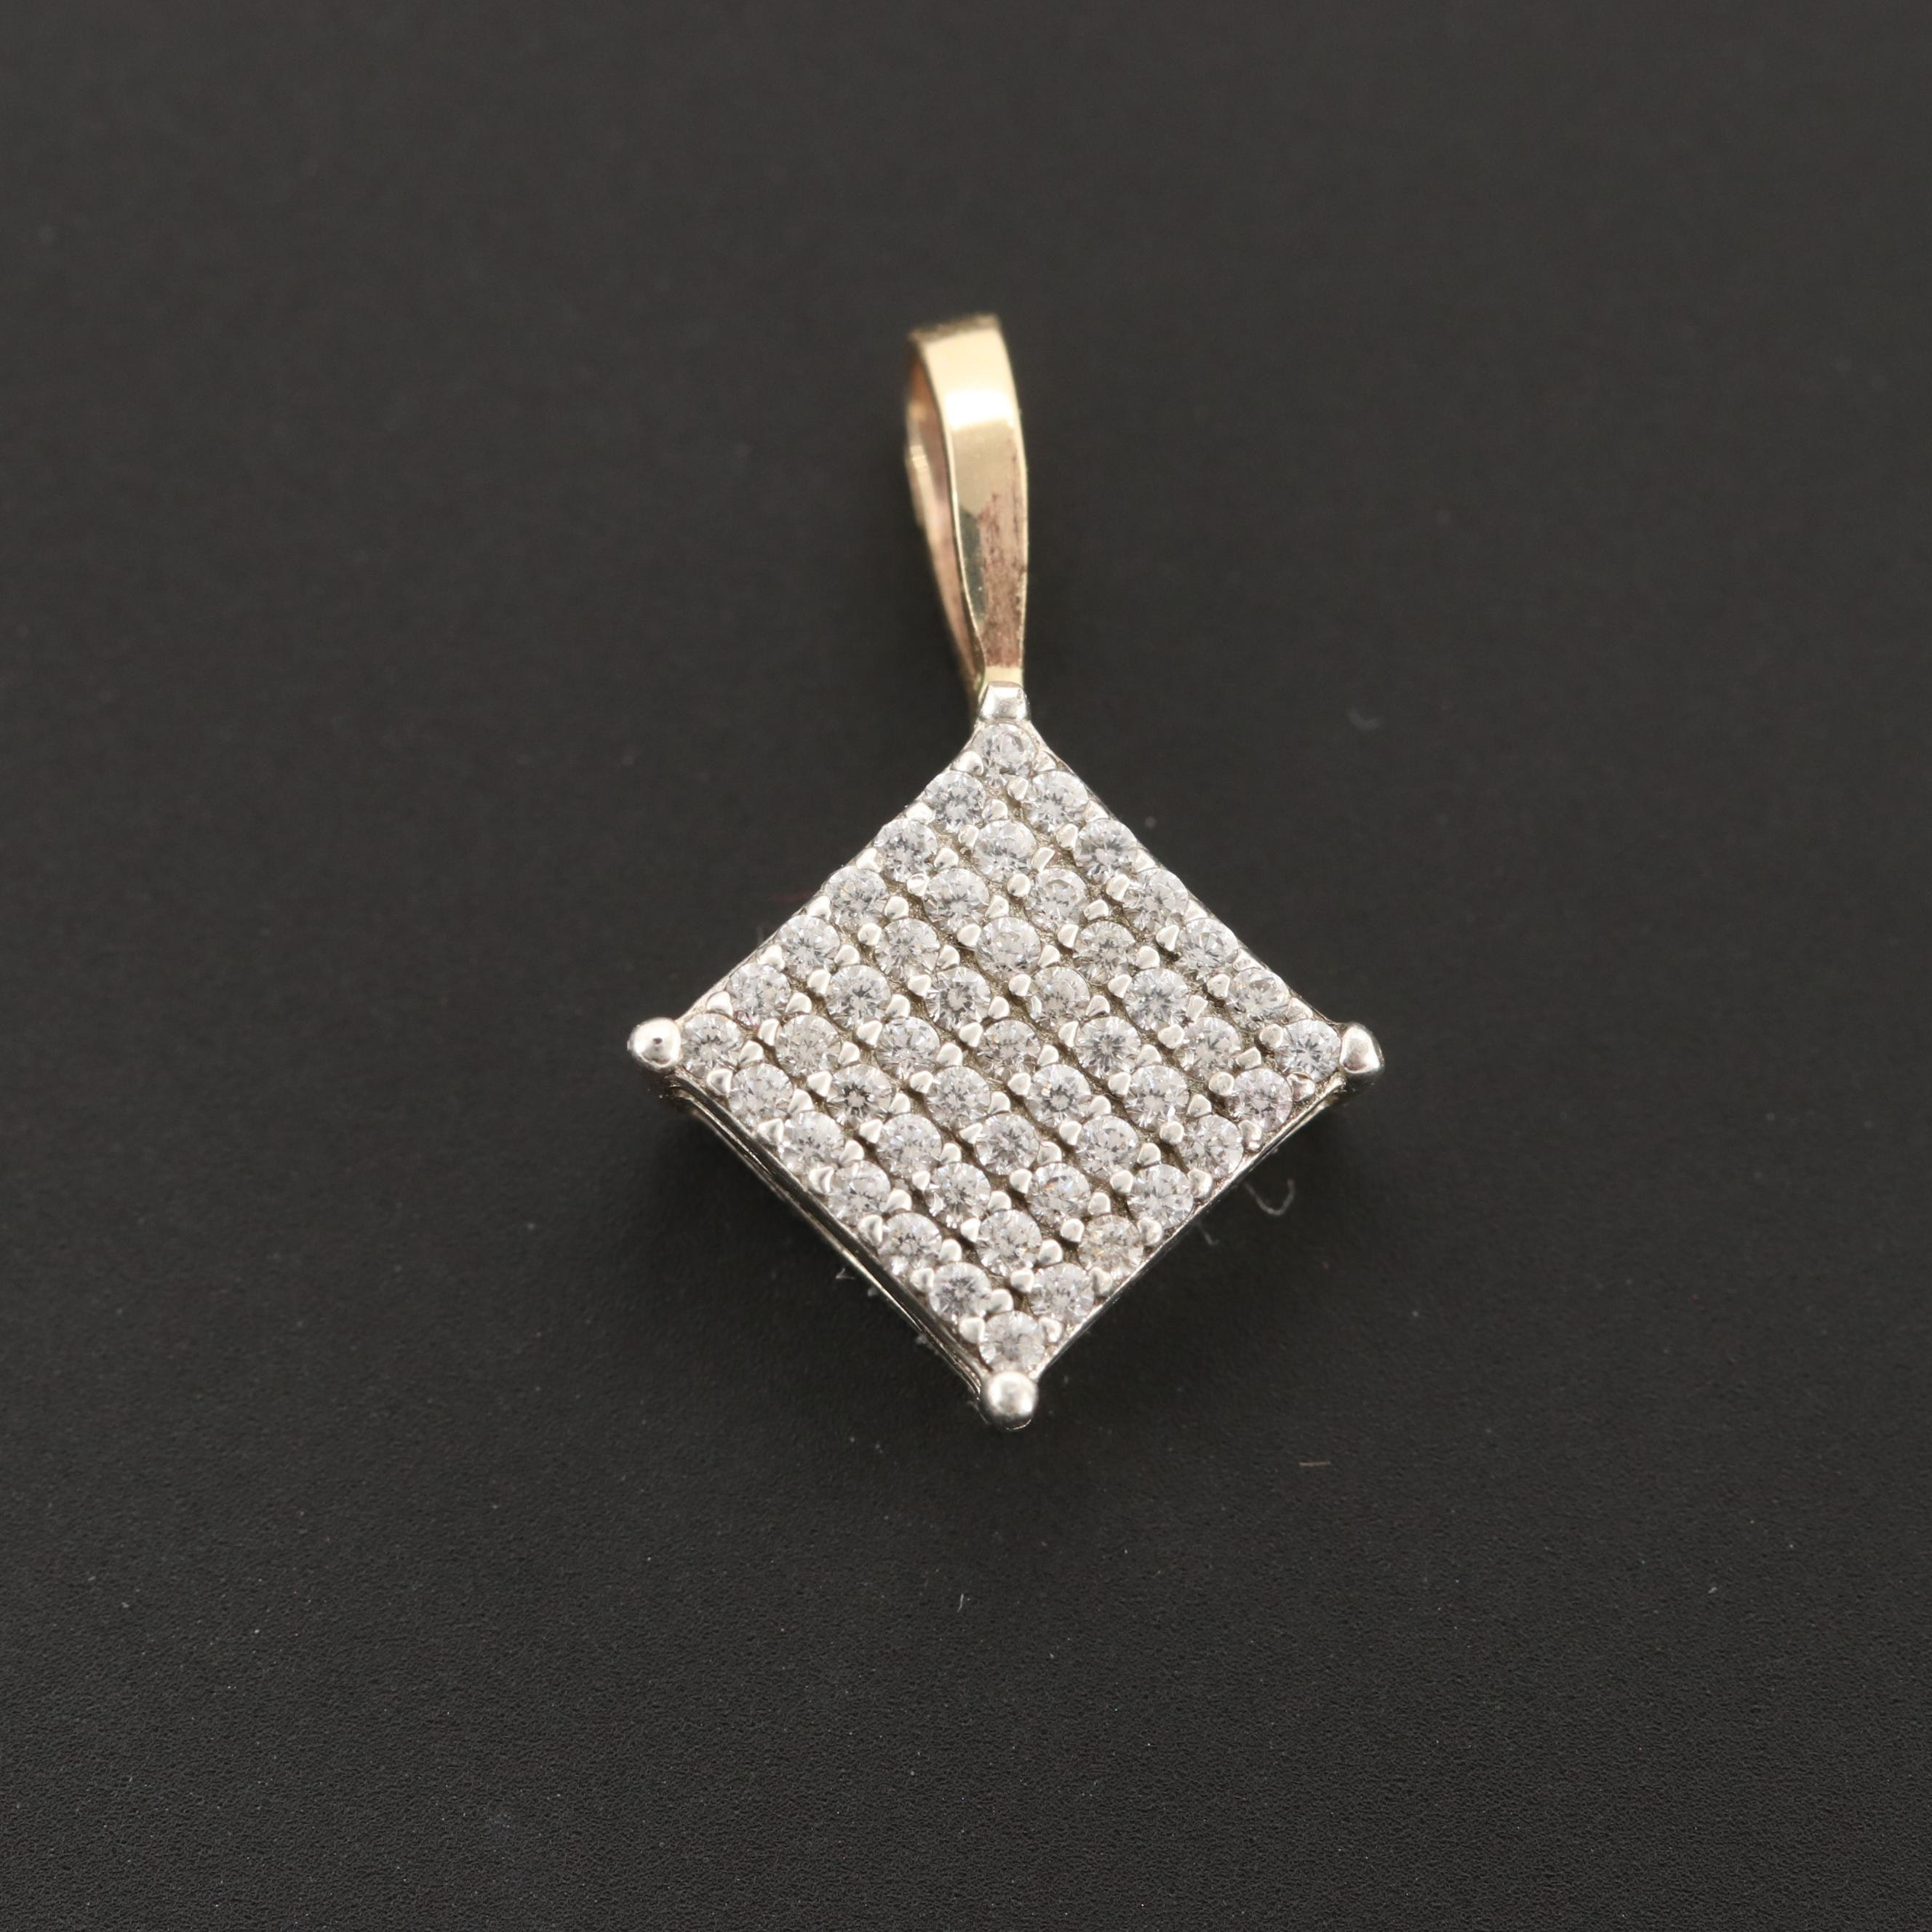 Sterling Silver and Diamond Pendant with 10K Yellow Gold Bail